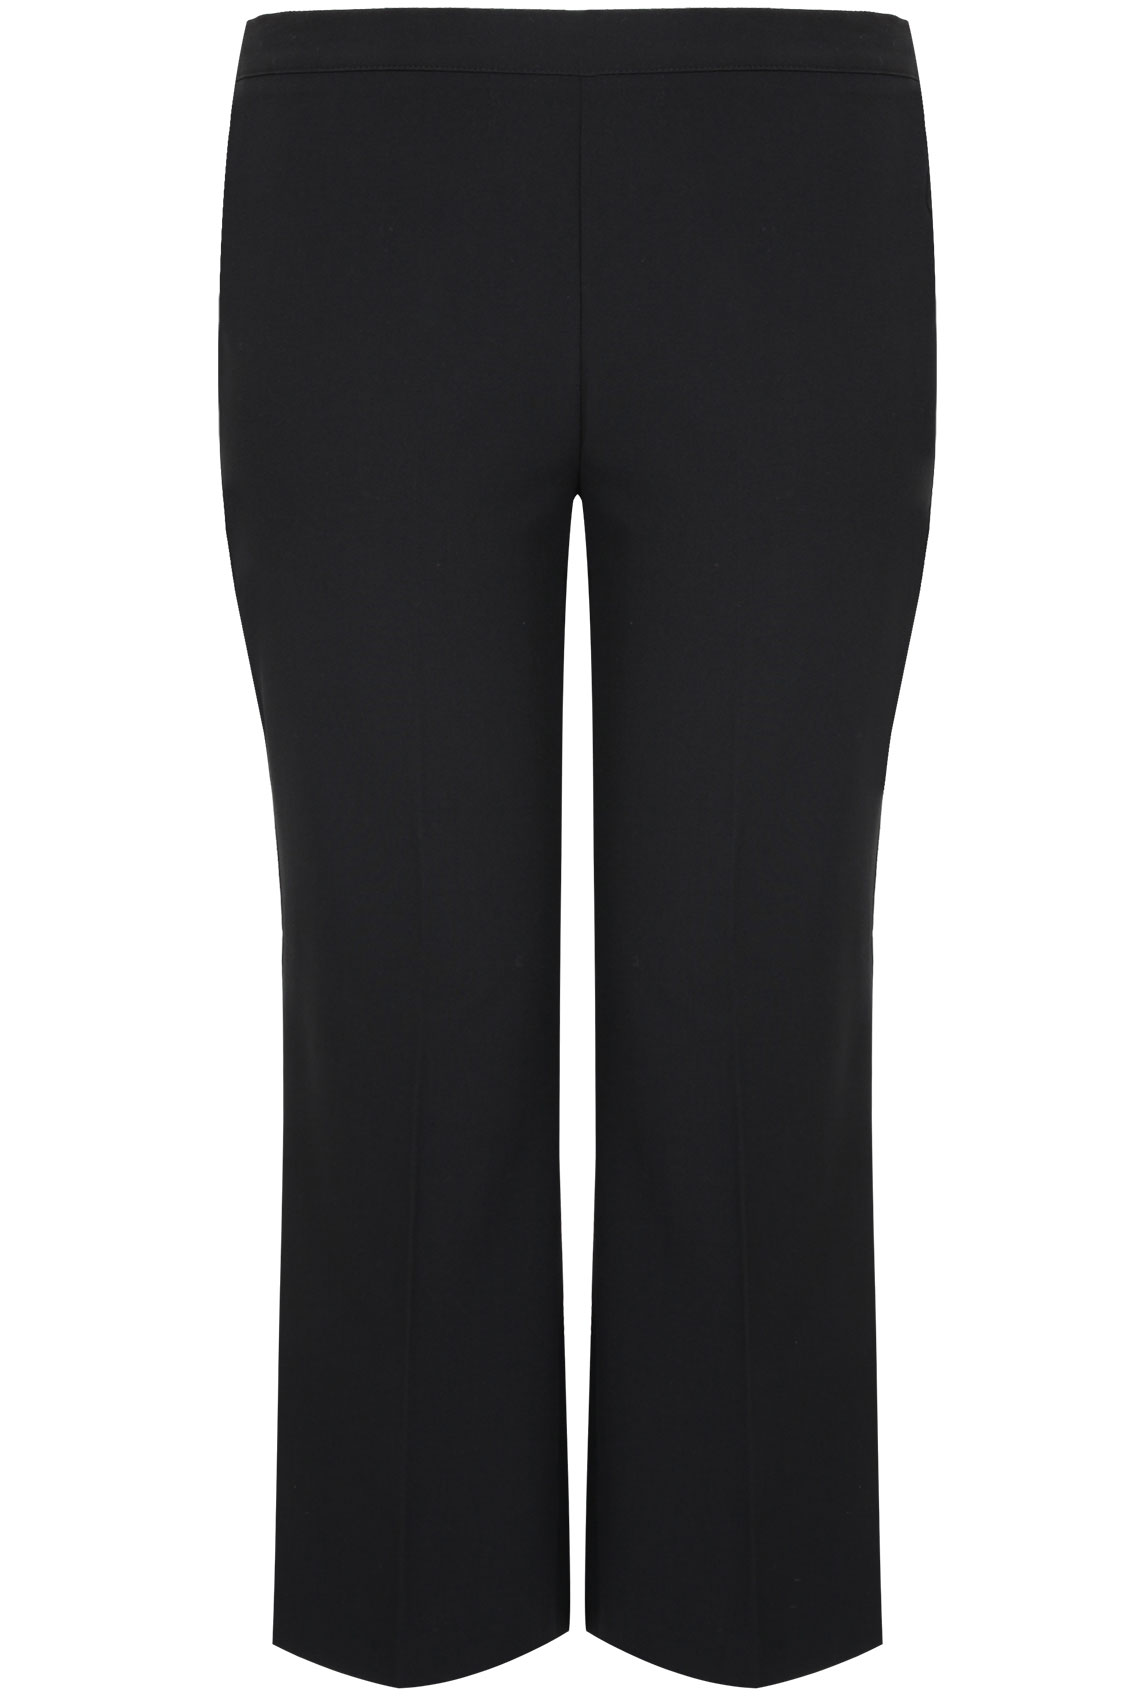 Pantalon coupe droite classique noir avec taille for Wholesale terms and conditions template